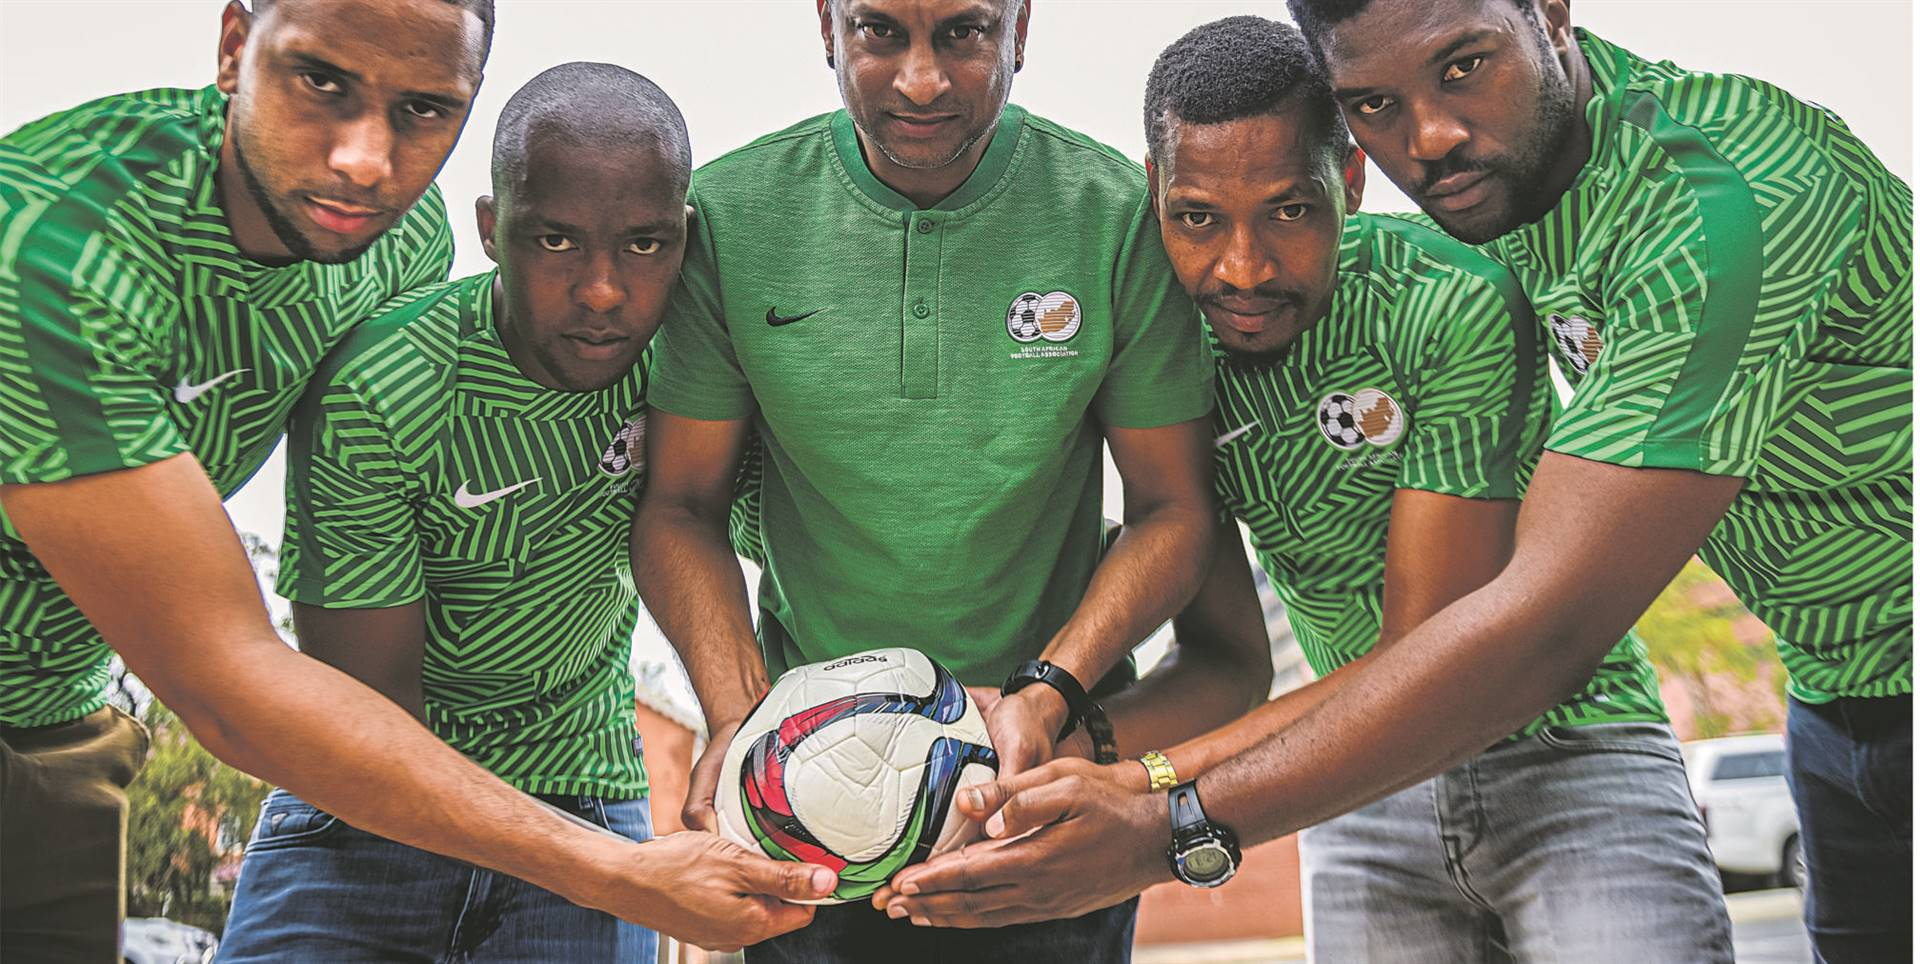 Some of the local players in South Africa's futsal team: Renaldo Donnelly, Tsepo Liphulo, the coach Gregory Nair, Enva Wiltwer and Simphiwe Mgedezi. There are serious concerns about their preparations because of a lack of facilities in the city. PHOTO: Moeketsi Mamane